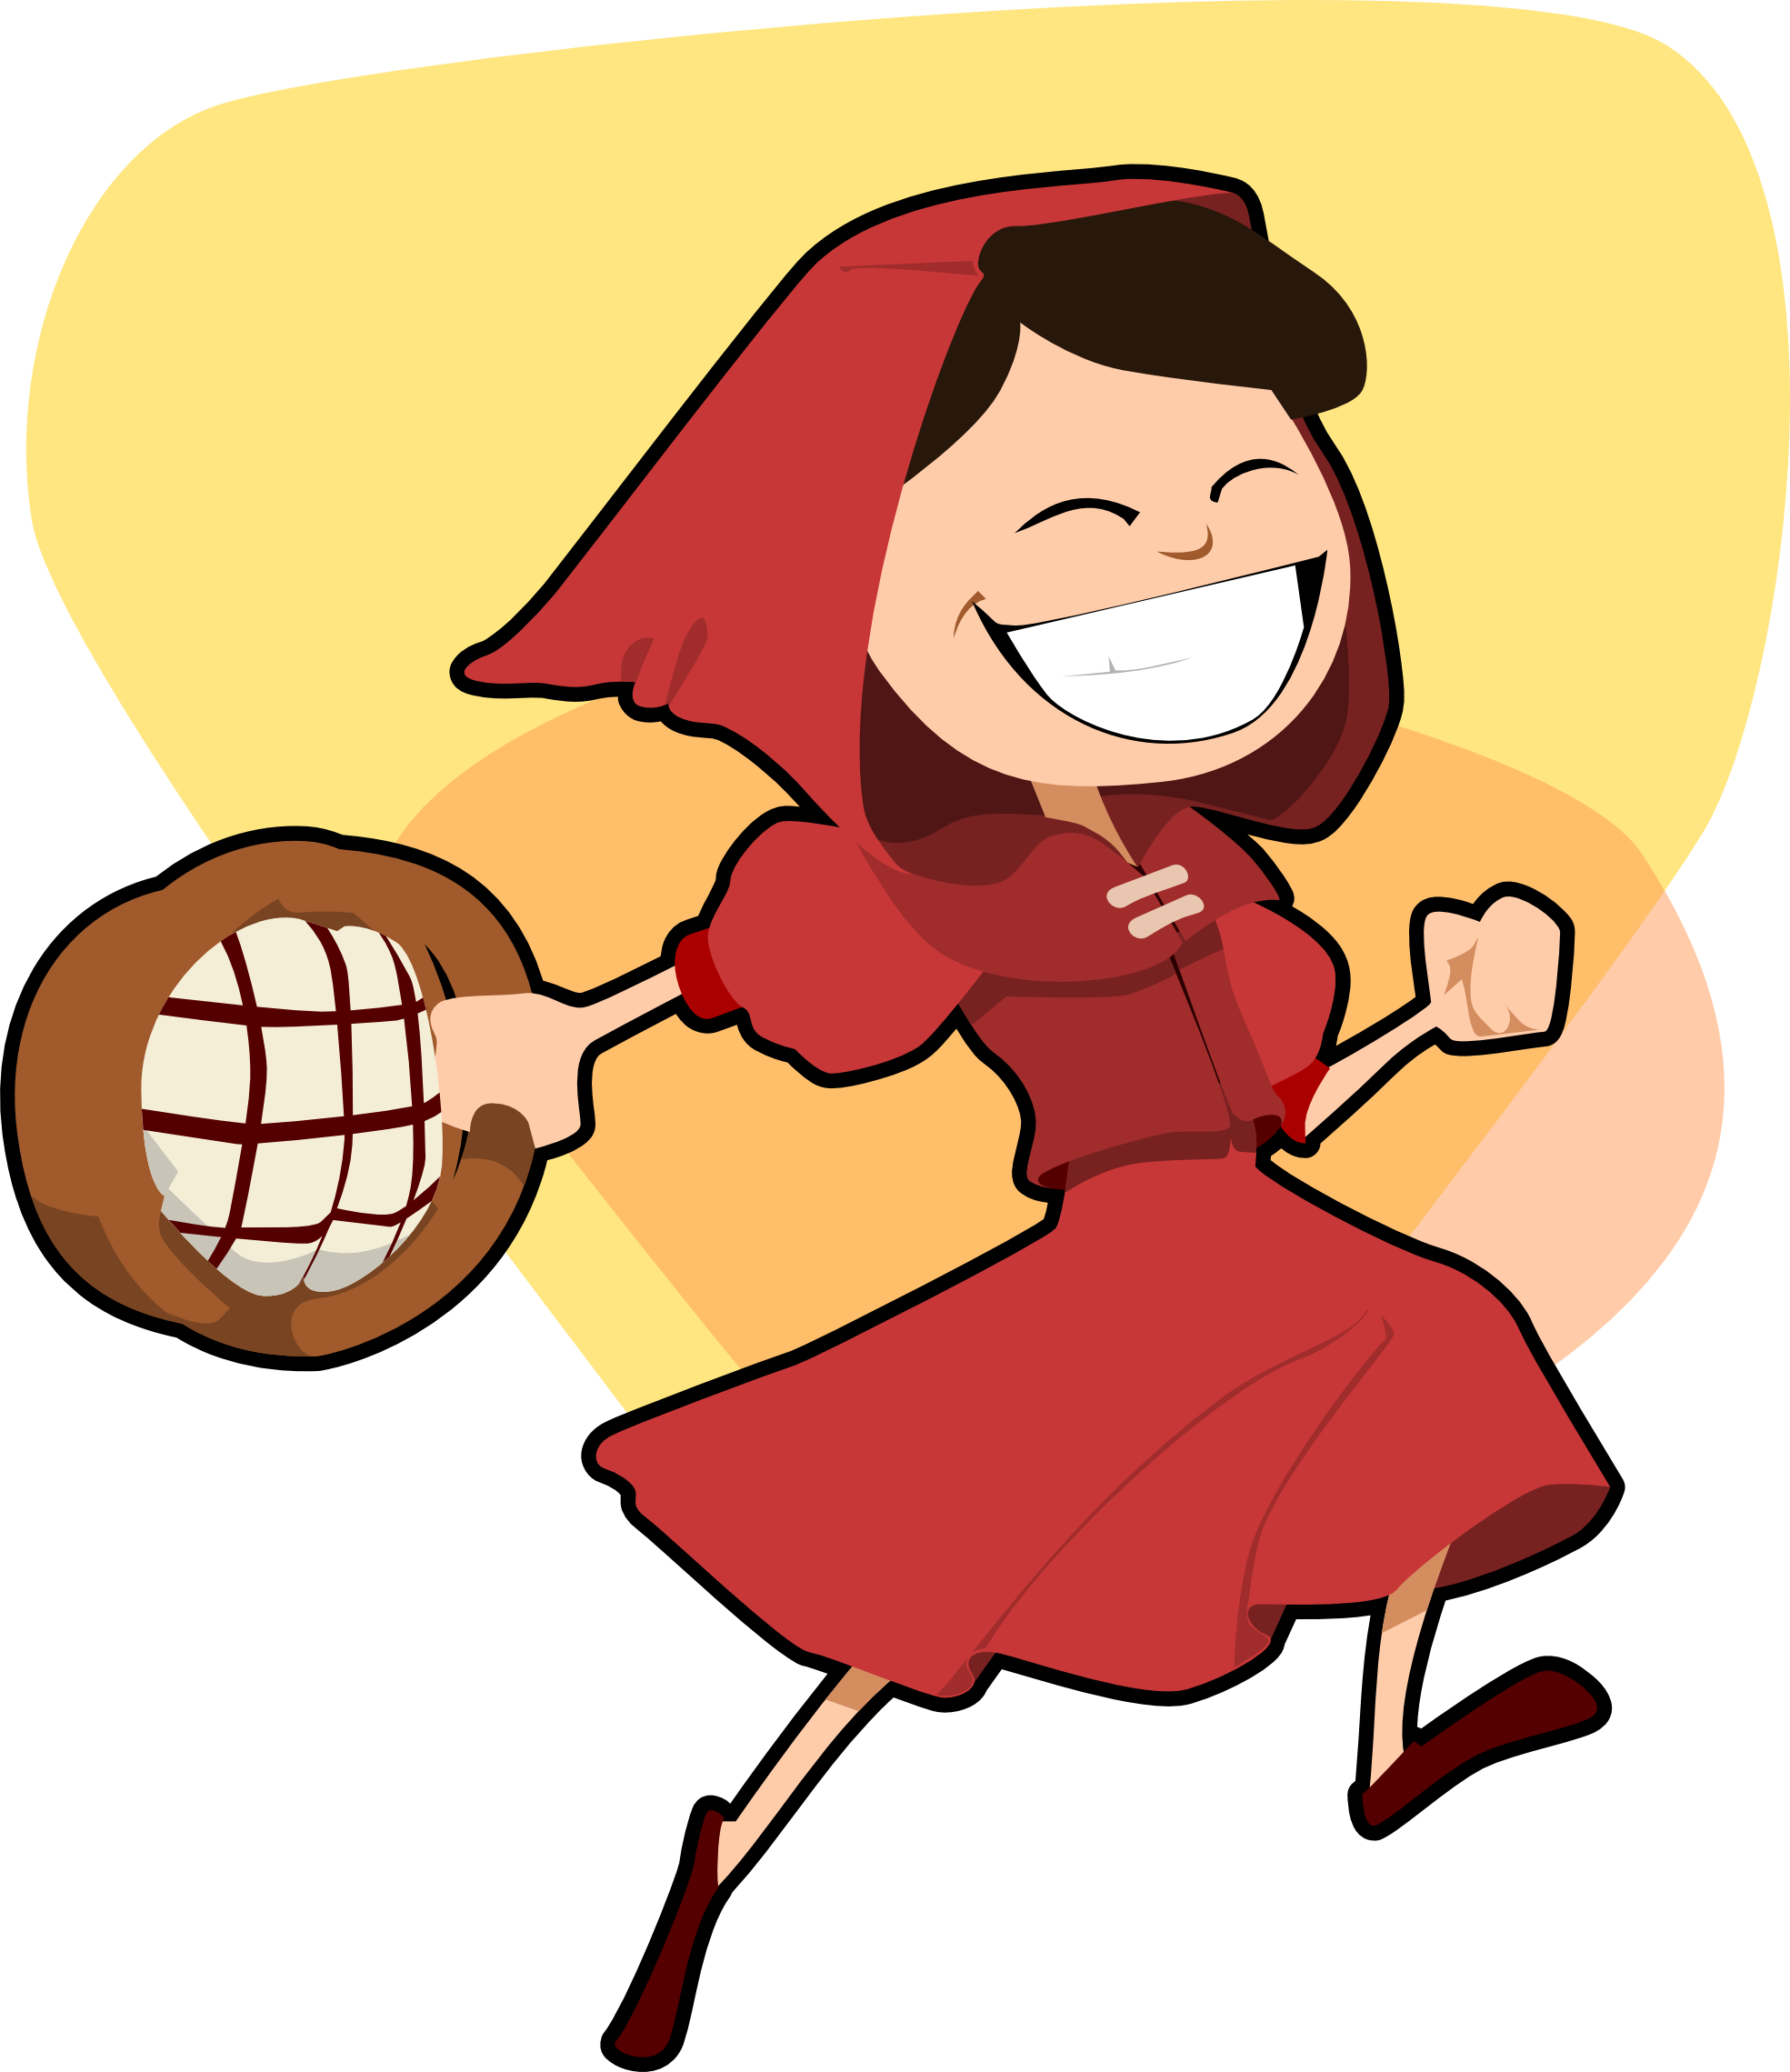 Little Red Riding Hood Scalable Vector G-little red riding hood scalable vector graphics - Clipart library-8